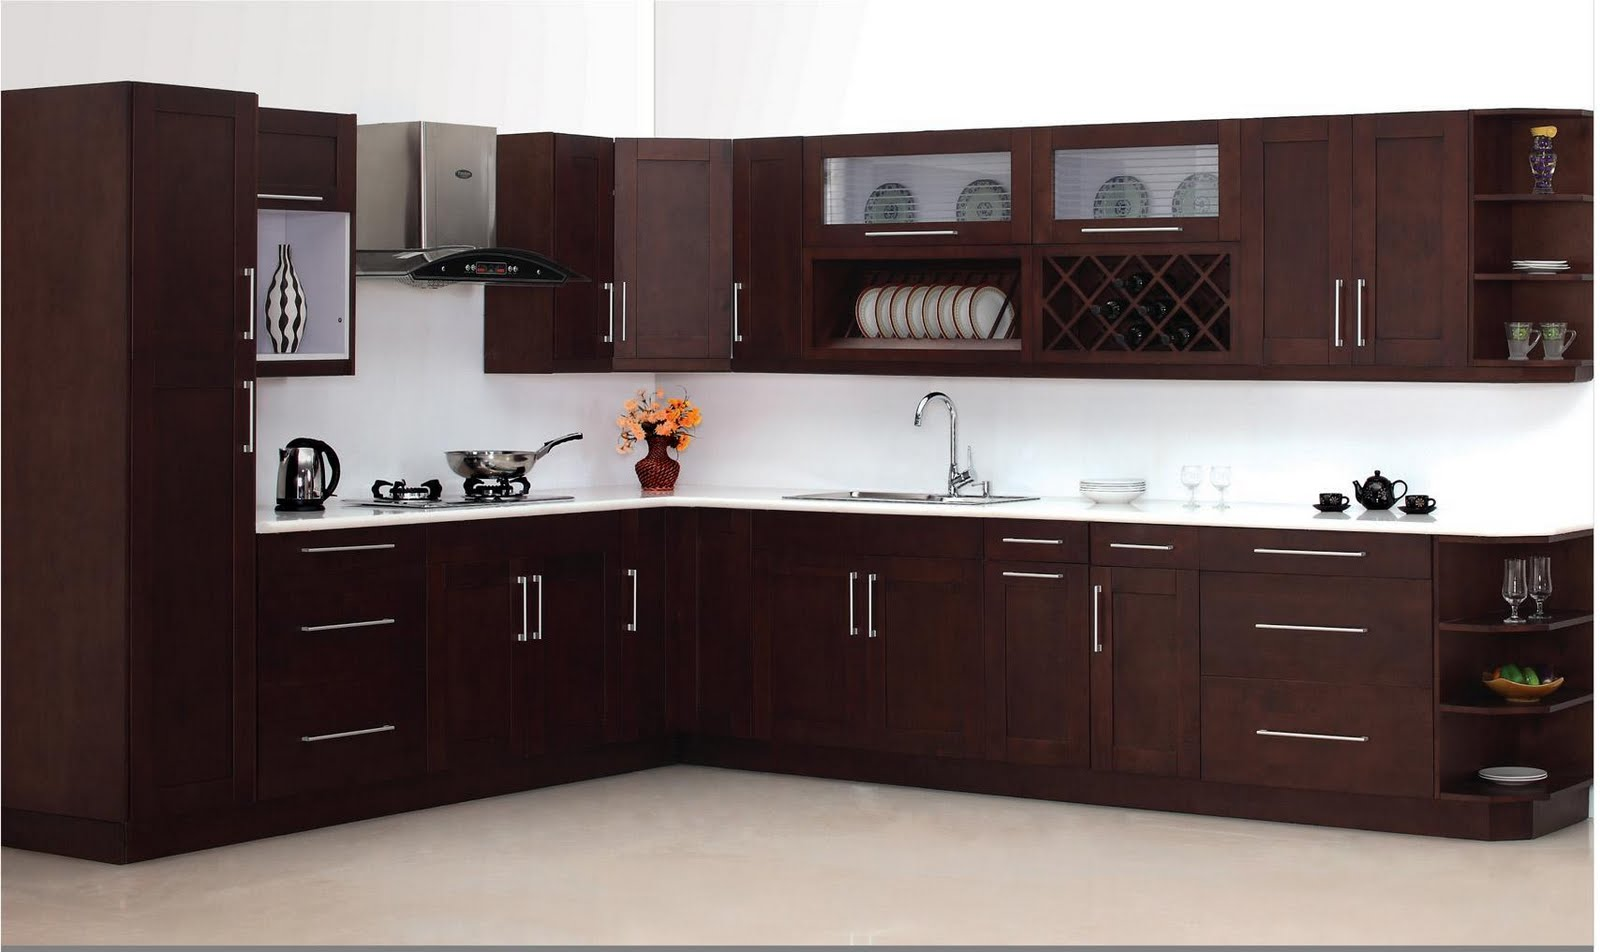 Espresso Shaker Cabinets Kitchen Image Kitchen Bathroom Design Center